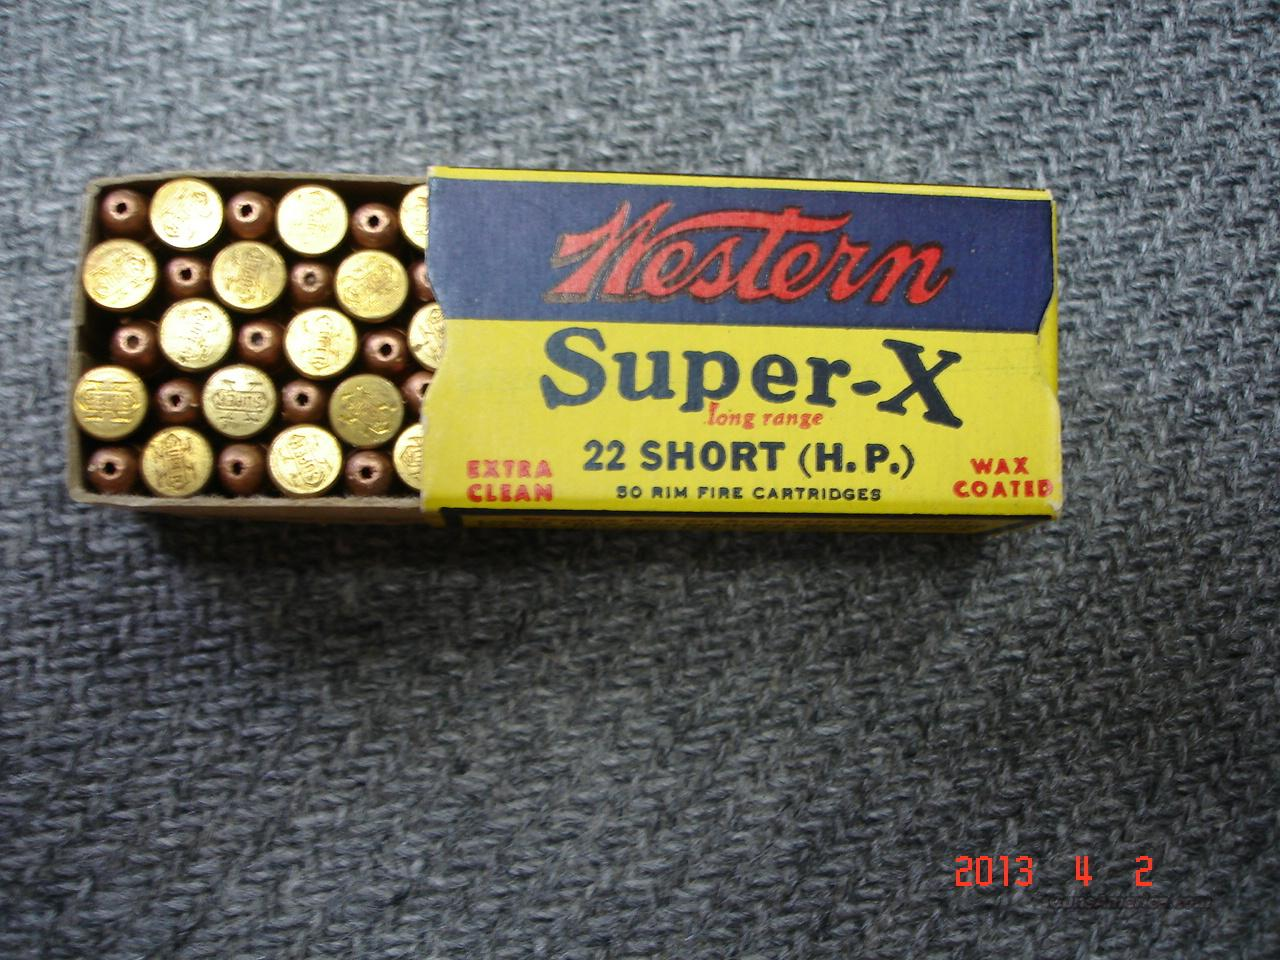 Vintage Western Super X .22 Short HP  Non-Guns > Ammunition